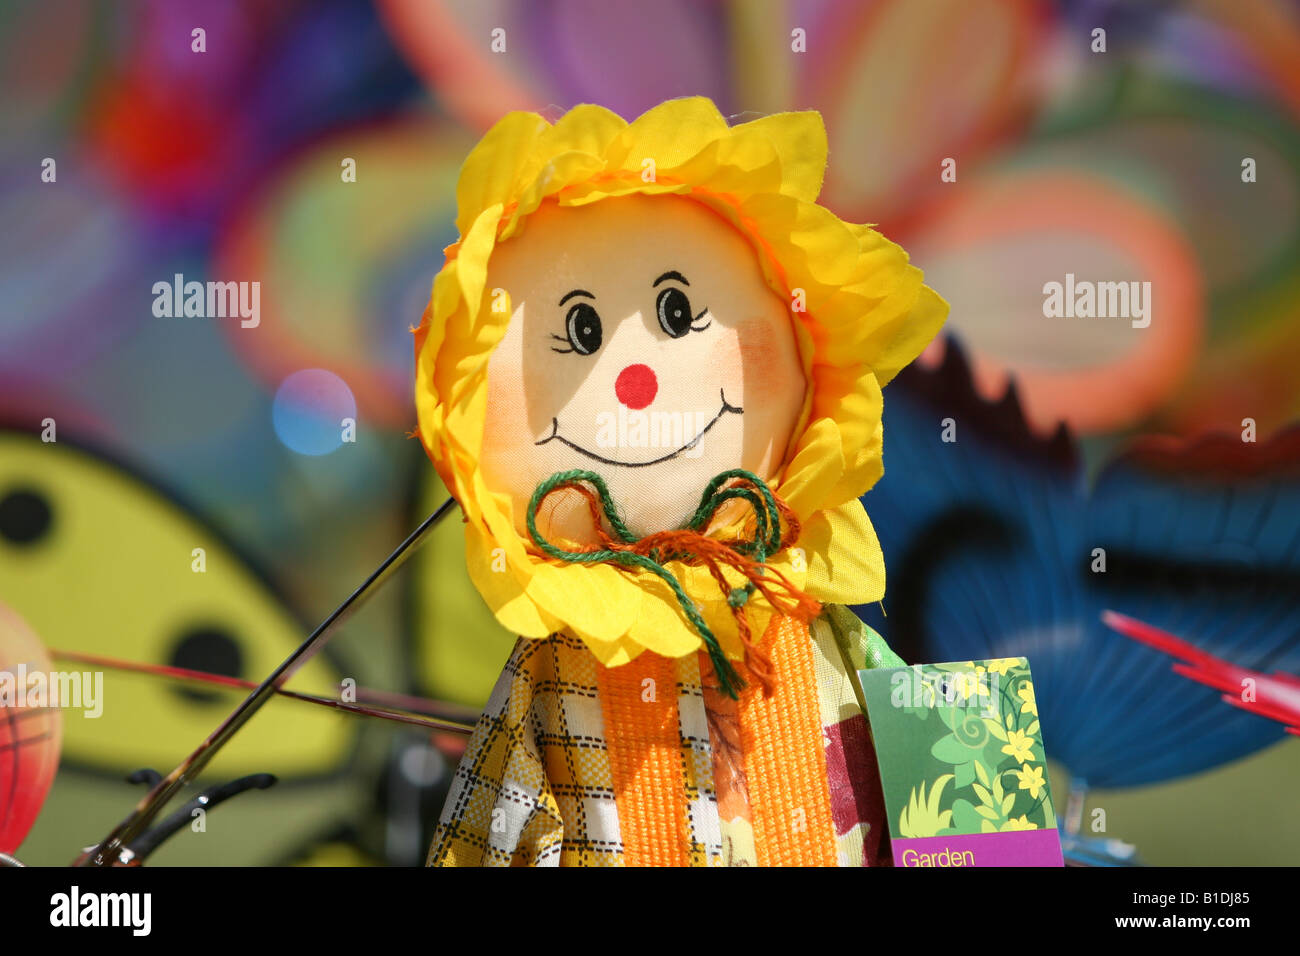 A doll and wind vanes at the Blackheath kite festival Lewisham London - Stock Image